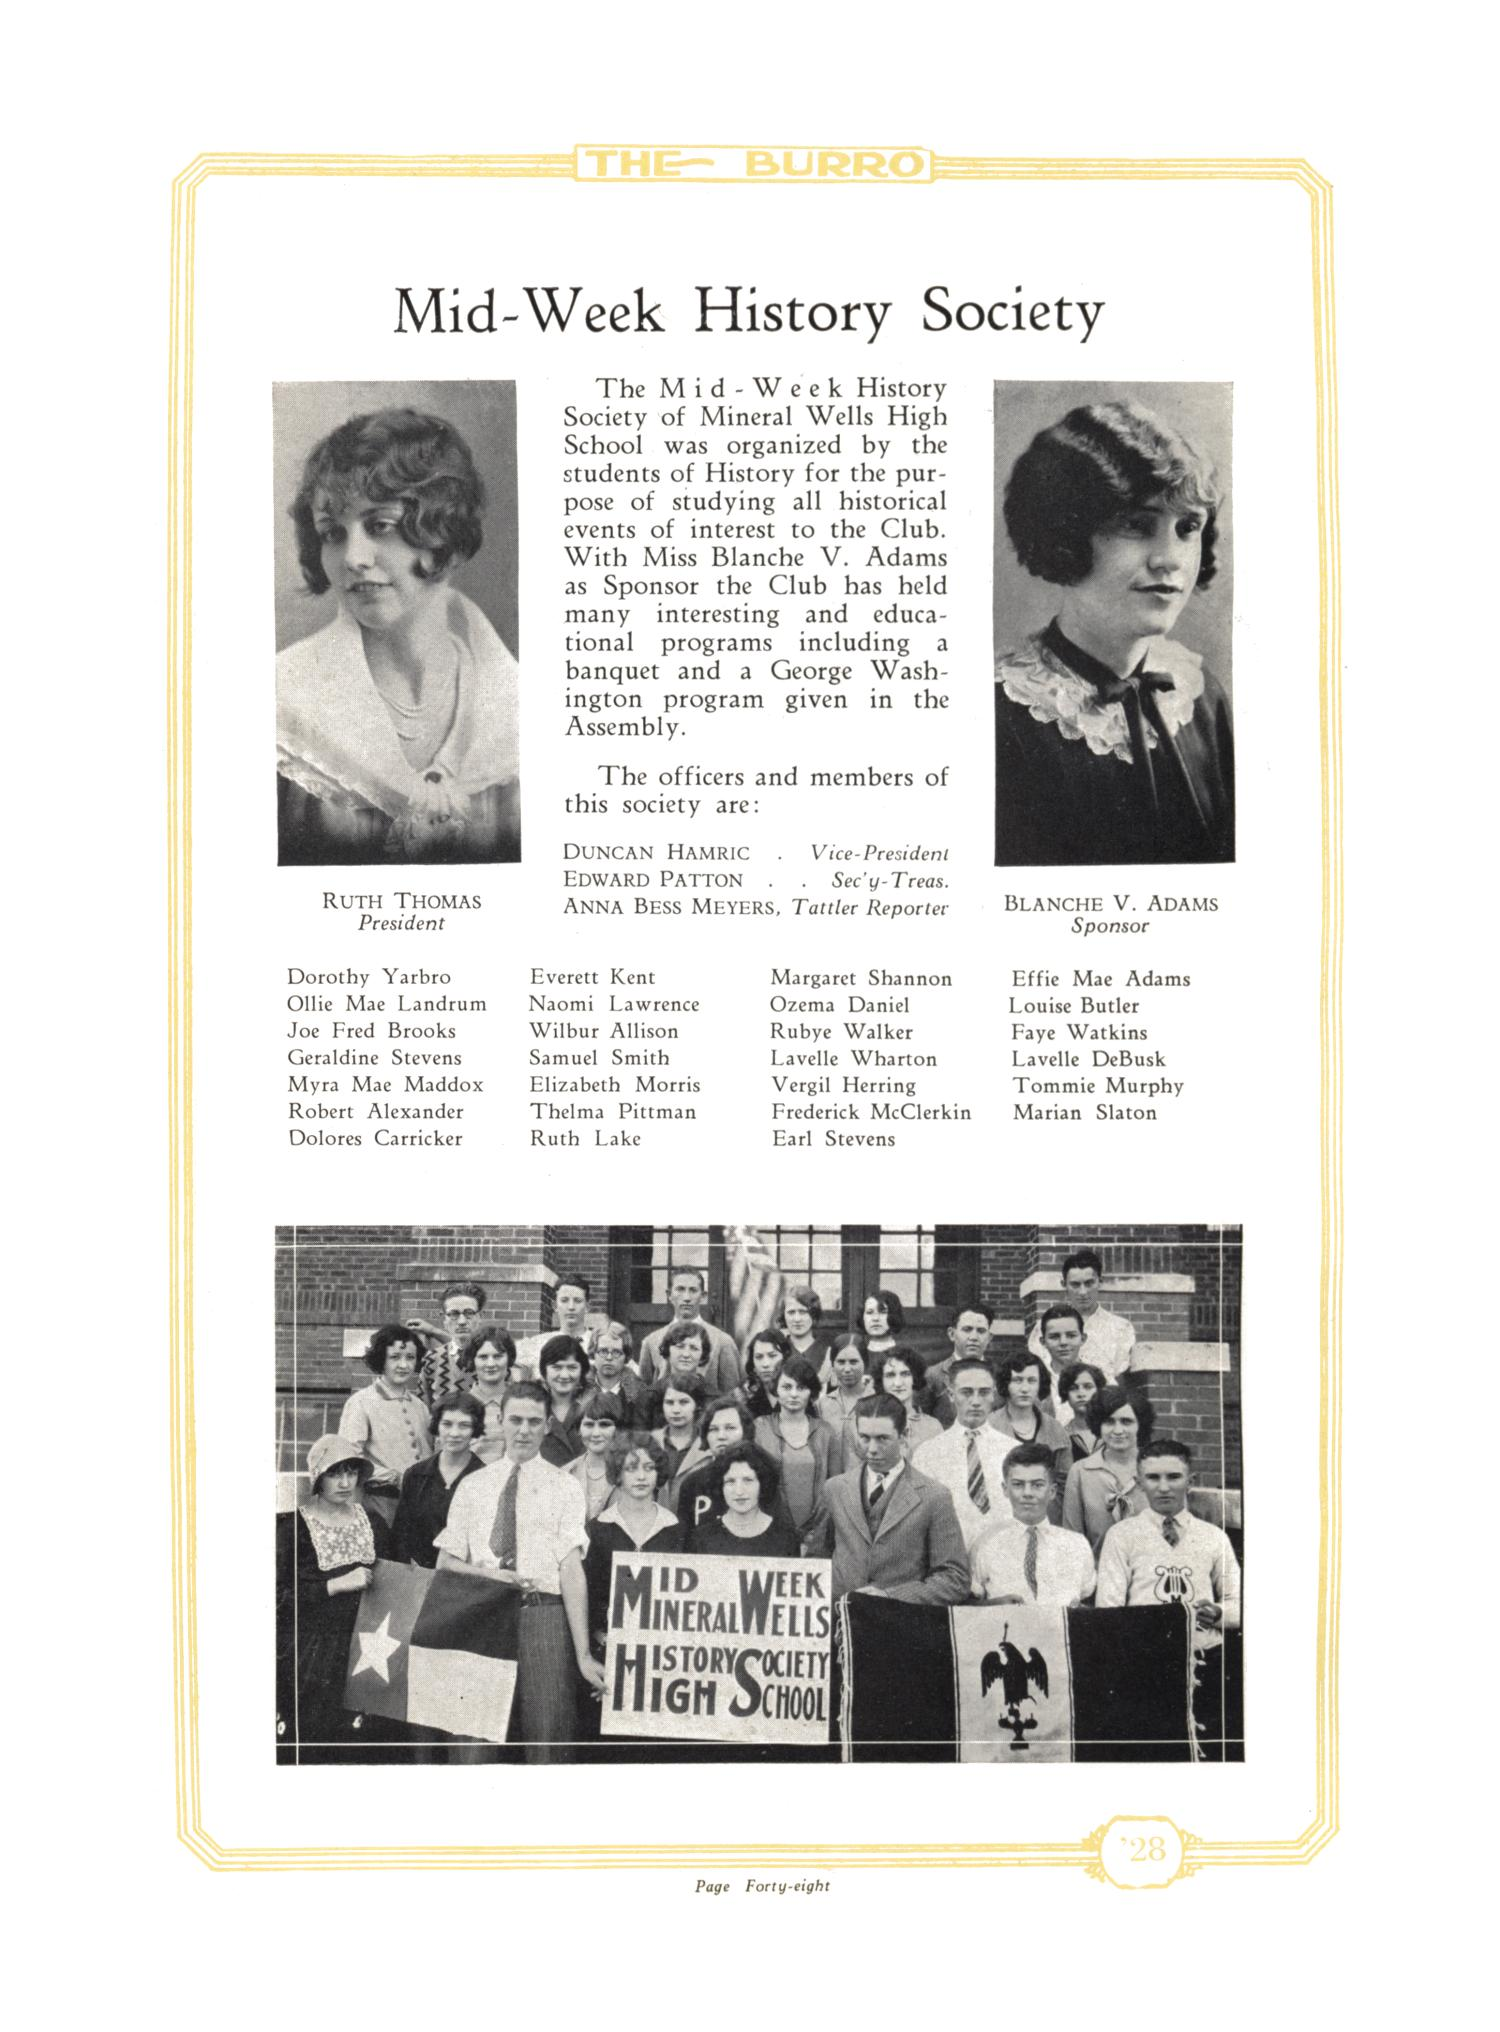 The Burro, Yearbook of Mineral Wells High School, 1928                                                                                                      48